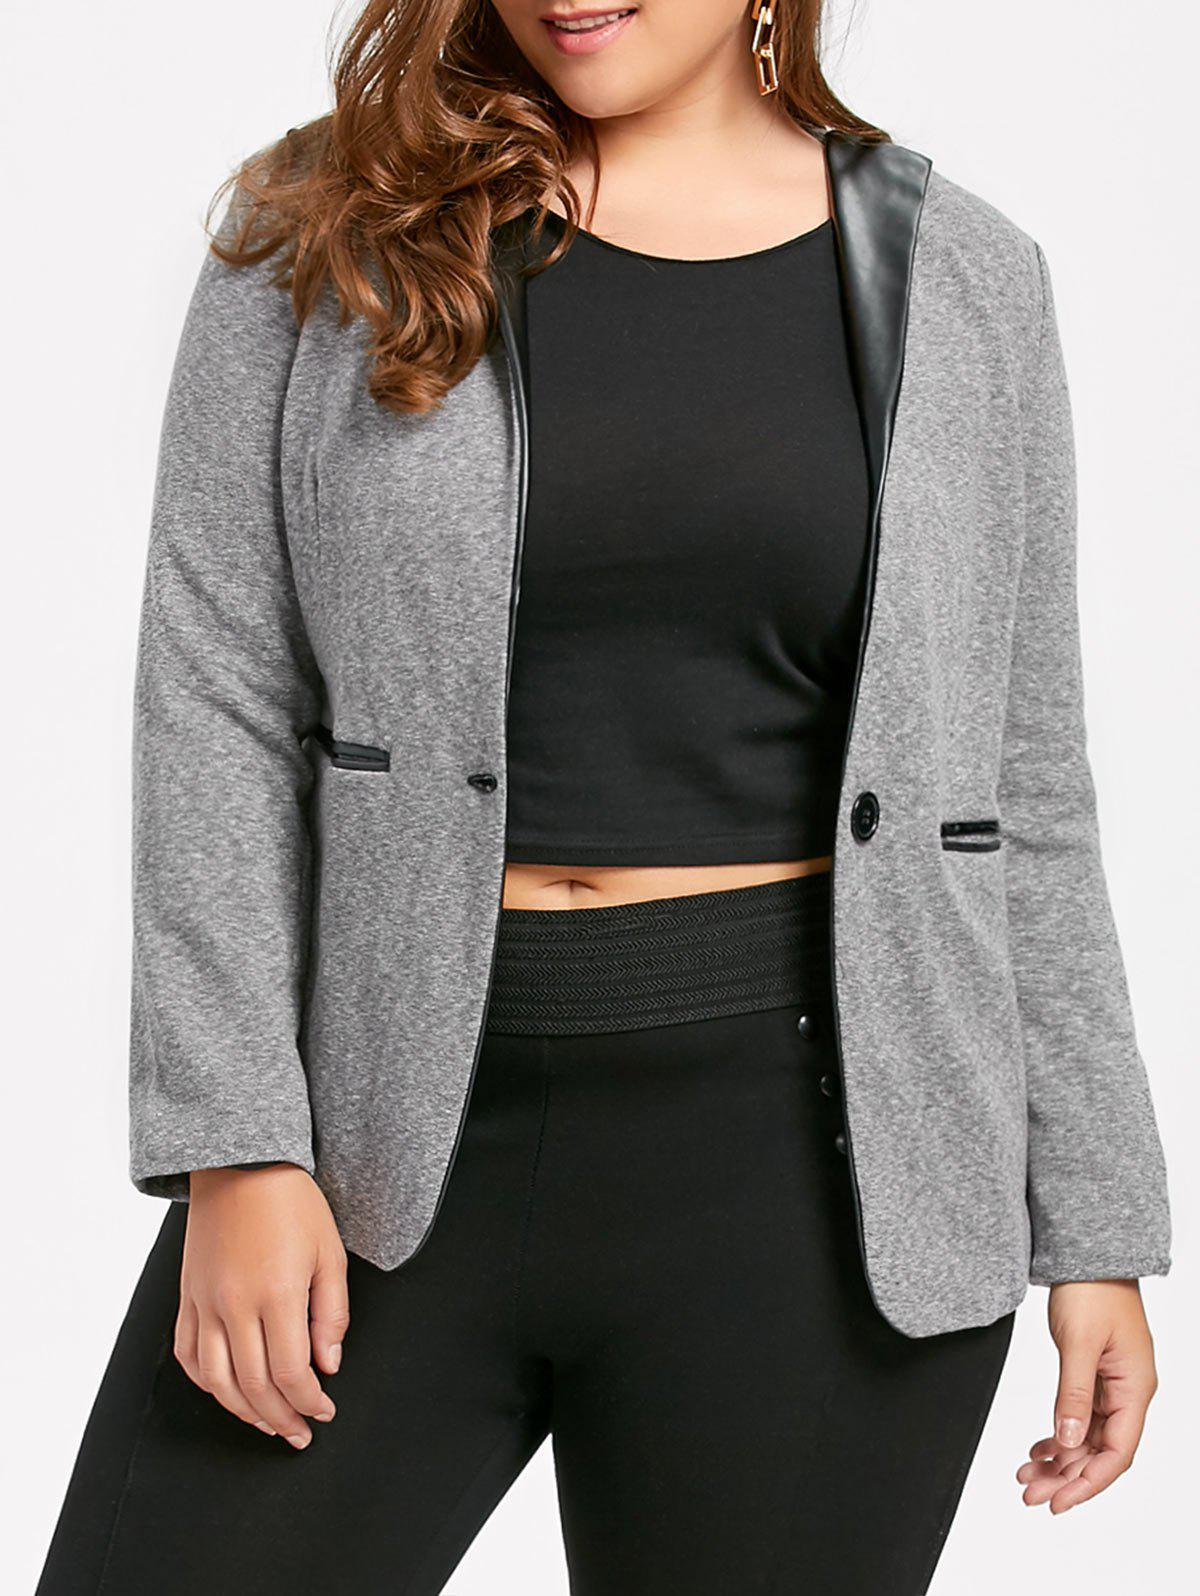 Plus Size V Neck One Button Jacket with PocketsWOMEN<br><br>Size: 6XL; Color: DEEP GRAY; Clothes Type: Jackets; Material: Cotton Blends,Polyester; Type: Slim; Shirt Length: Regular; Sleeve Length: Full; Collar: V-Neck; Pattern Type: Solid; Embellishment: Front Pocket; Style: Fashion; Season: Fall; Weight: 0.6300kg; Package Contents: 1 x Jacket;